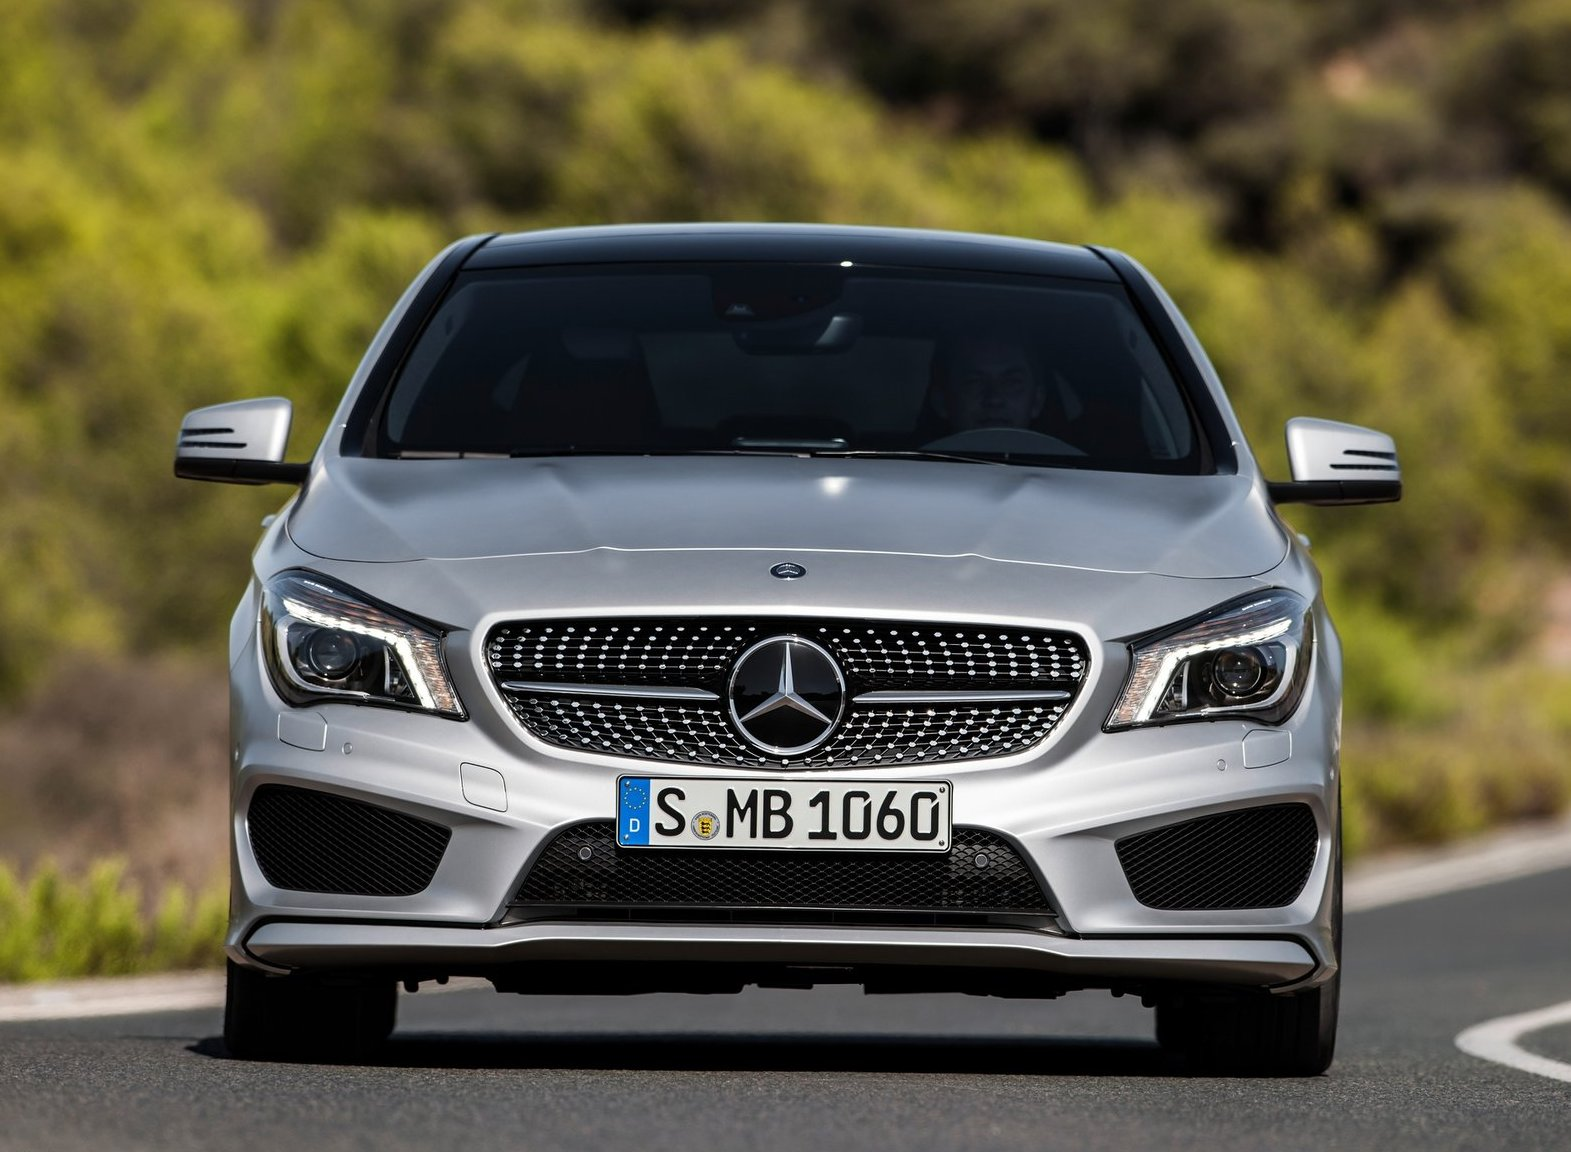 Mercedes benz cla class 2014 wallpaper hd for 2014 mercedes benz cla class